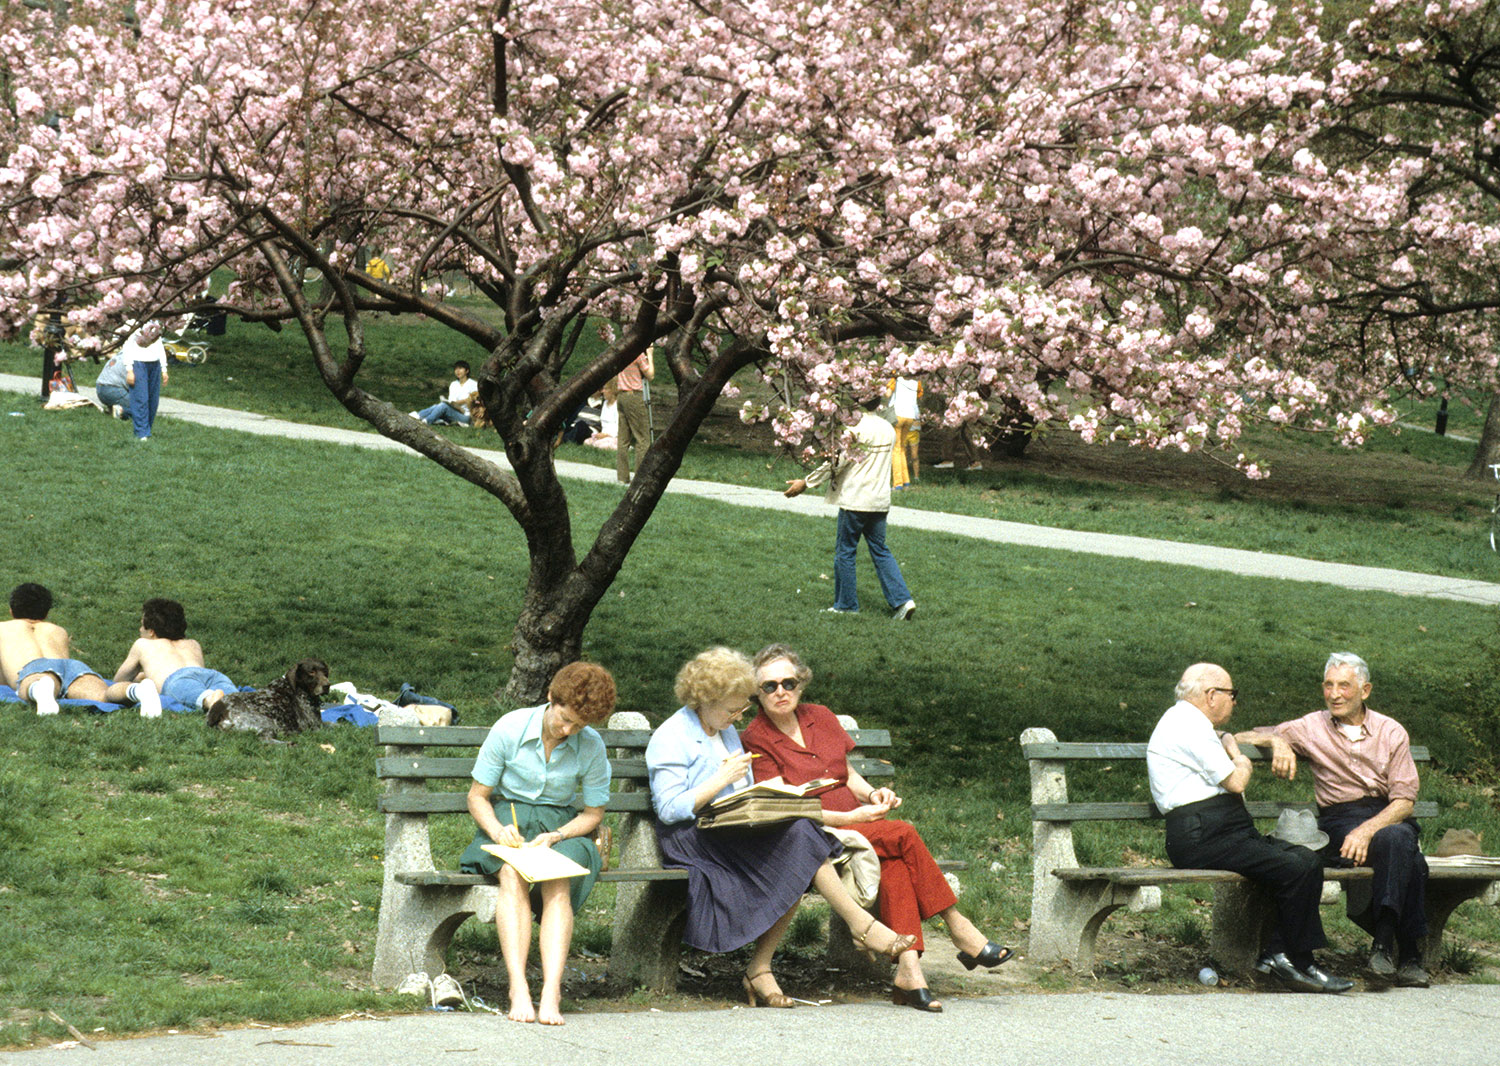 Sitting Under The Trees In Central Park 1983